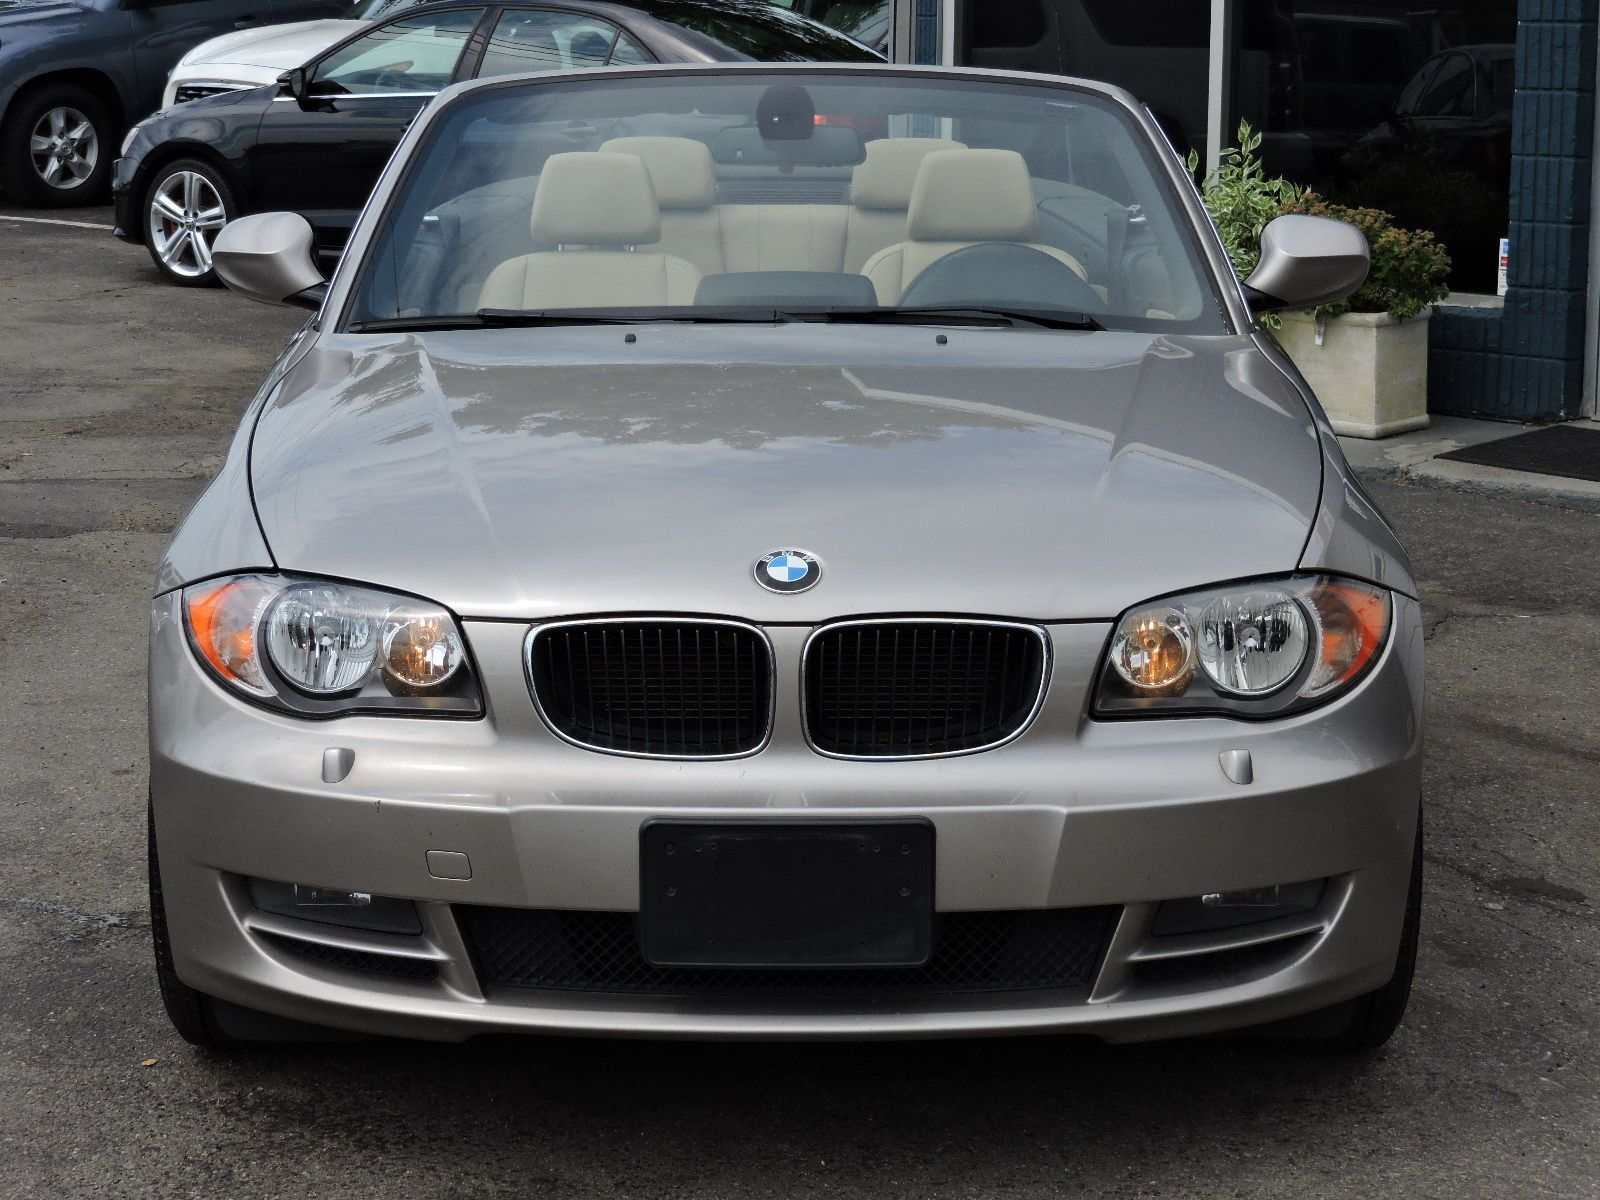 Used 2011 Bmw 1 Series At Auto House Usa Saugus